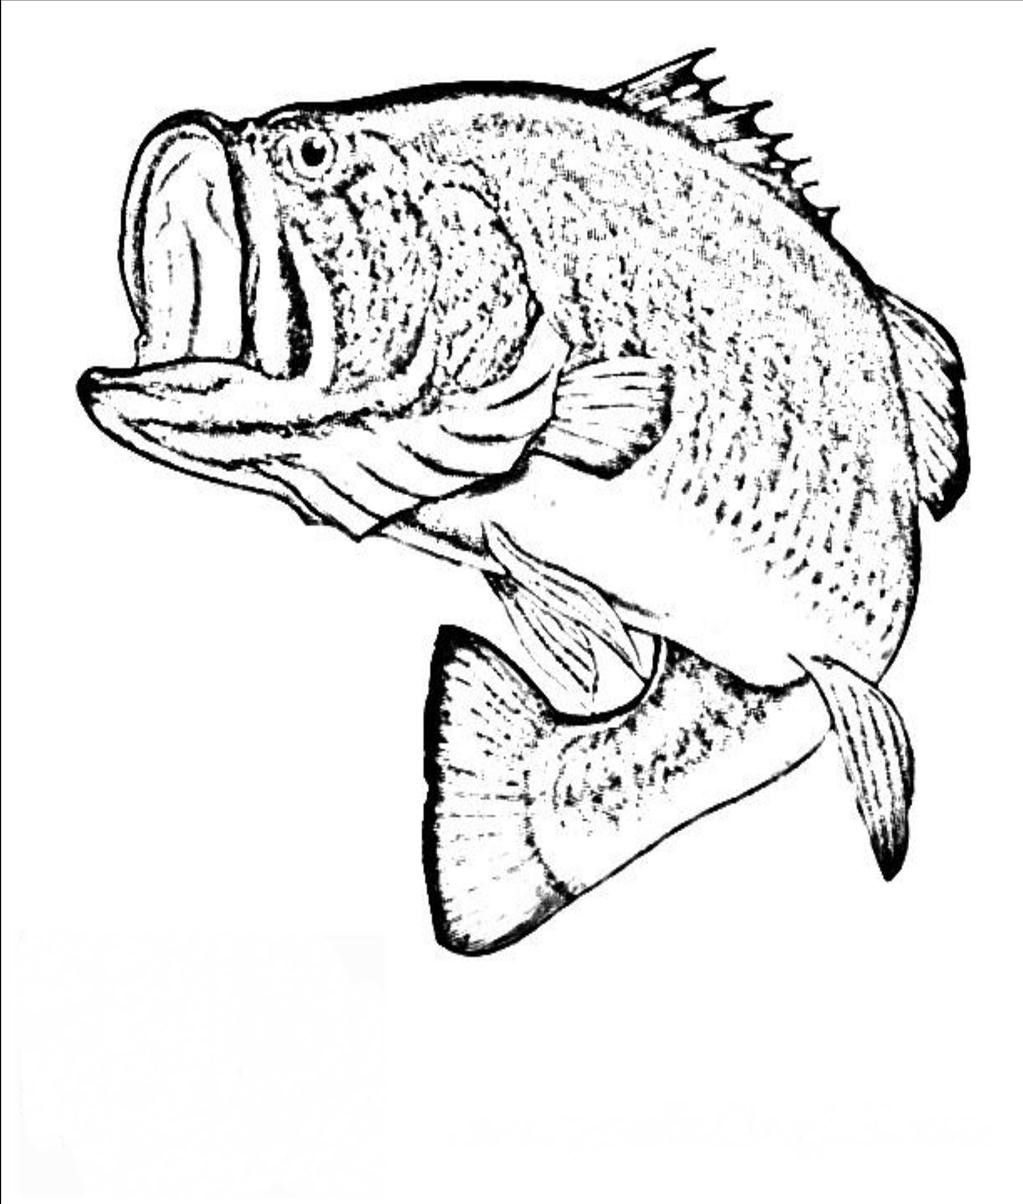 Realistic Fish Drawing at GetDrawings.com | Free for personal use ...